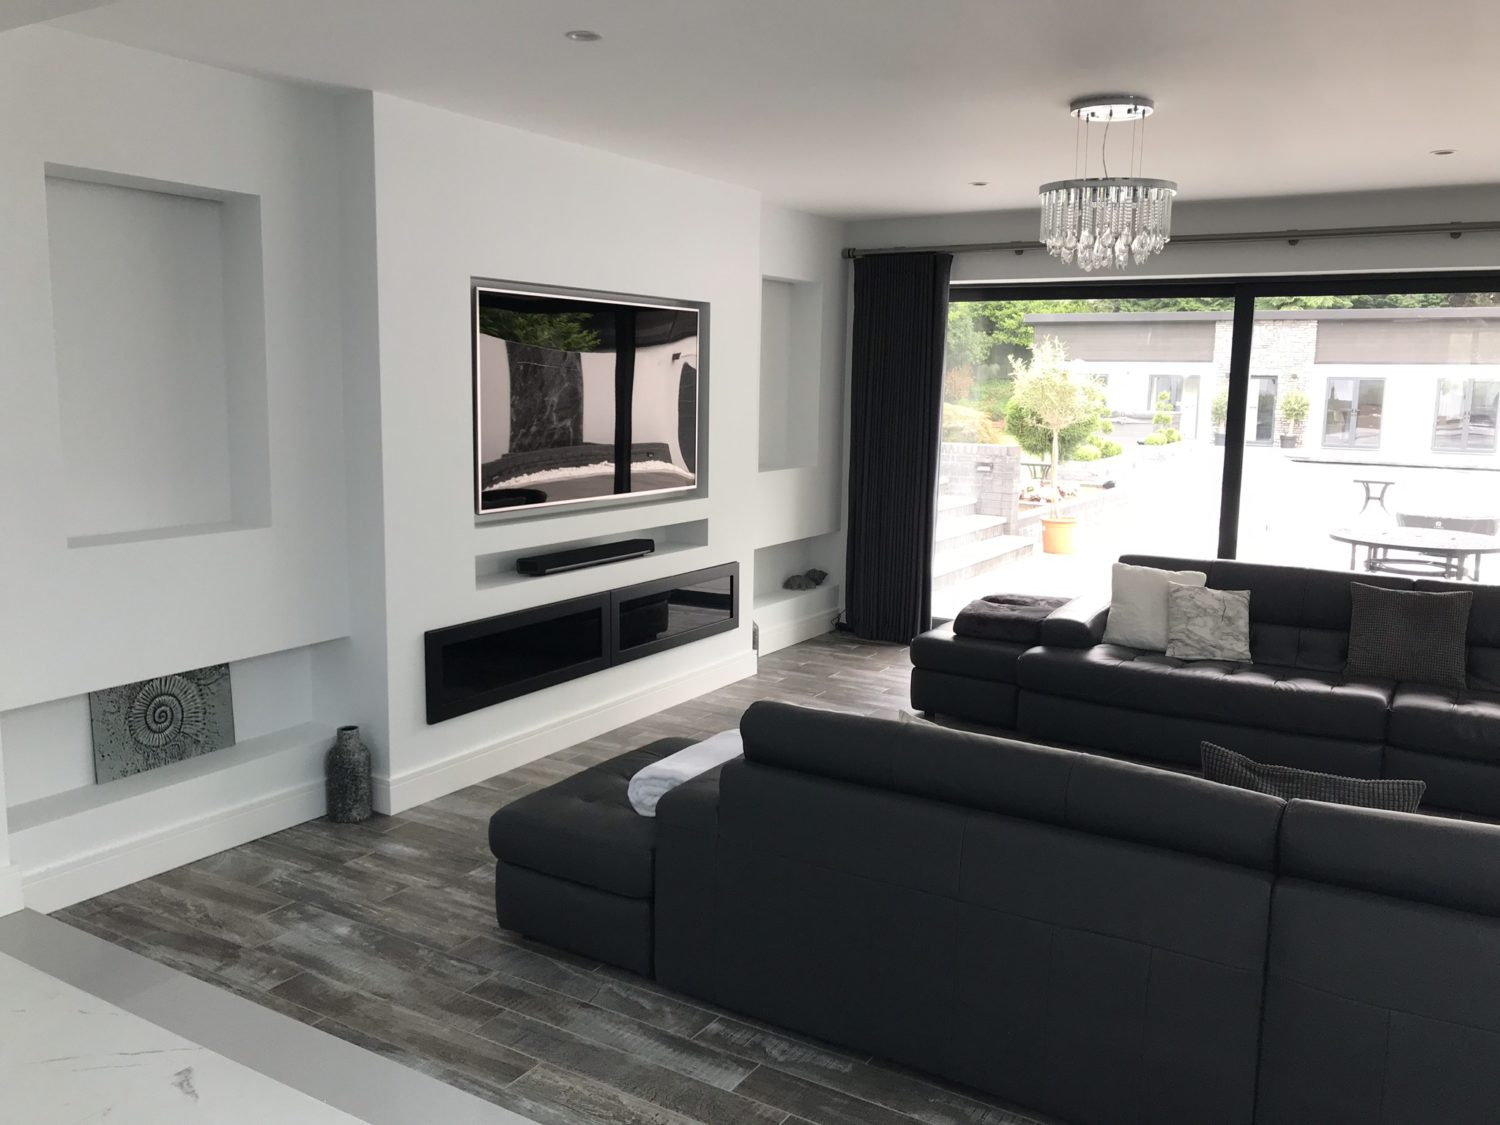 rational, tv, lounge, tv units, media, design, specialist, bespoke, client, brief